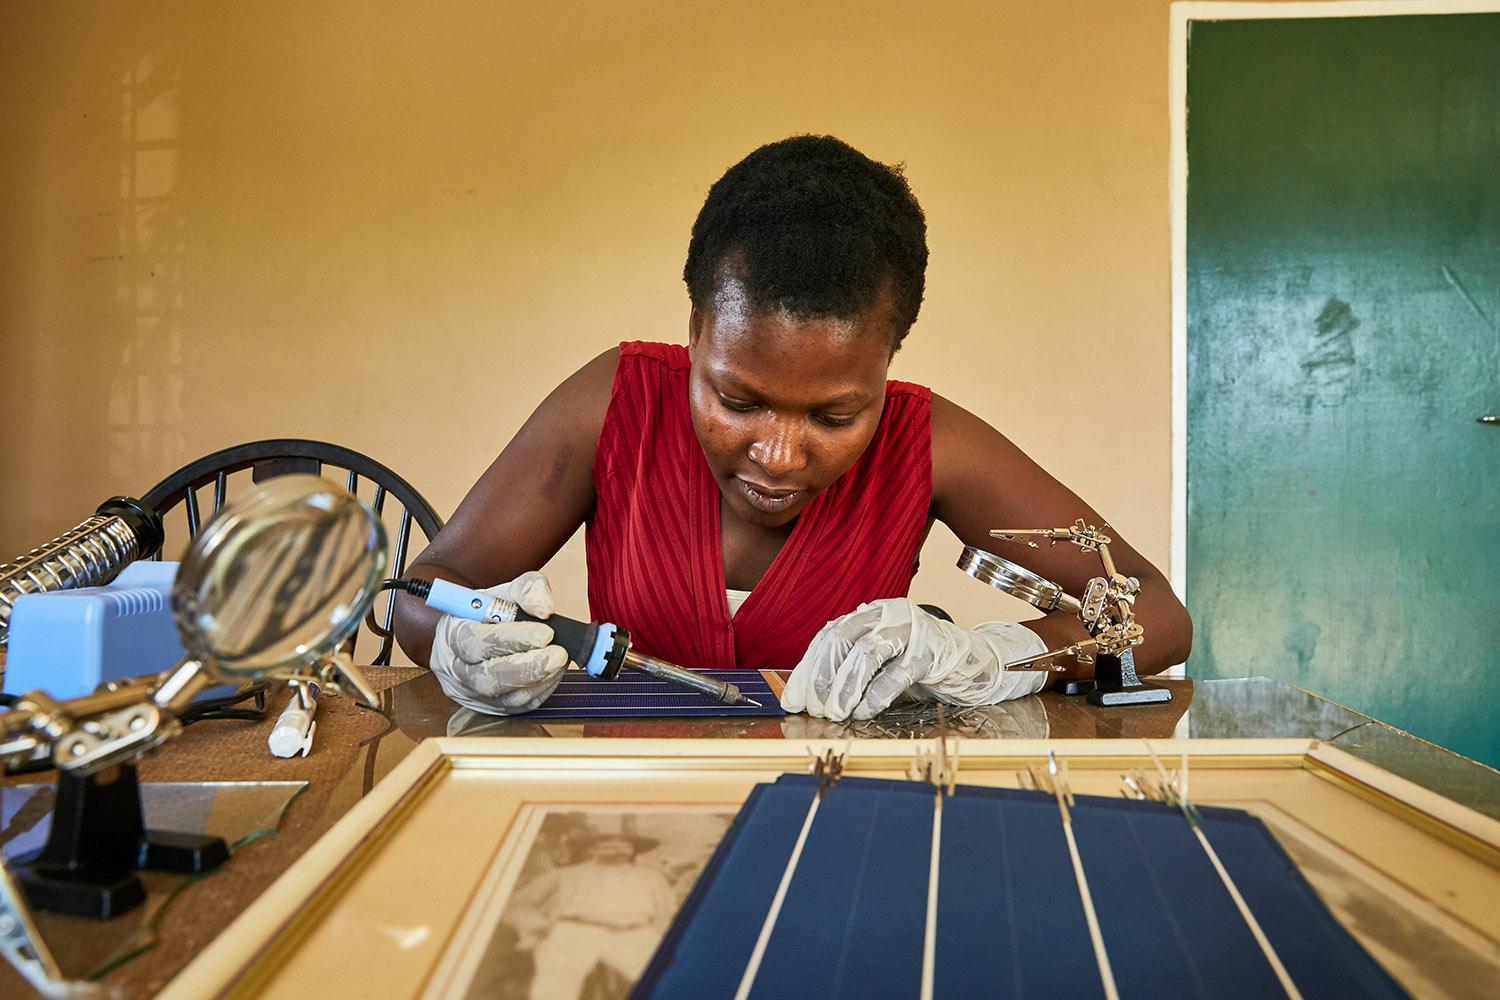 Jennifer, student at Green Malata, learn how to assemble solar panels, Luchenza, southern Malawi, 2017.  Green Malata teaches a variety of renewable energy skills, including solar panel building and maintenance, biogas generation, and wind turbines. As solar panel technology becomes cheaper and easier to use, training villages like Green Malata can afford to not only use them as part of their curriculum, but also to sell and rent them out to local villagers, providing much needed extra income.